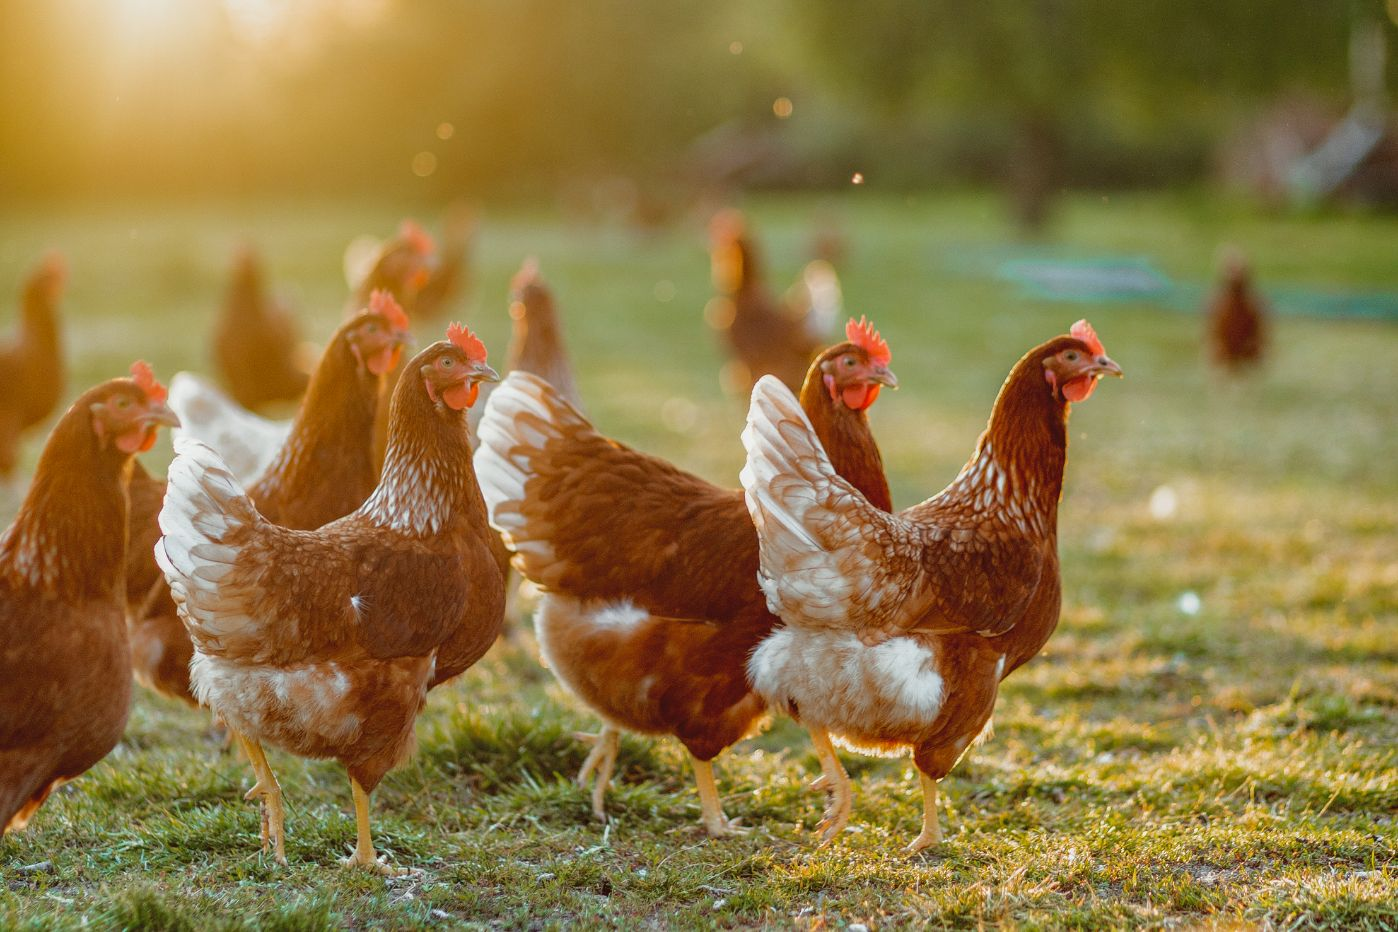 Close up of chickens in a field at sunset